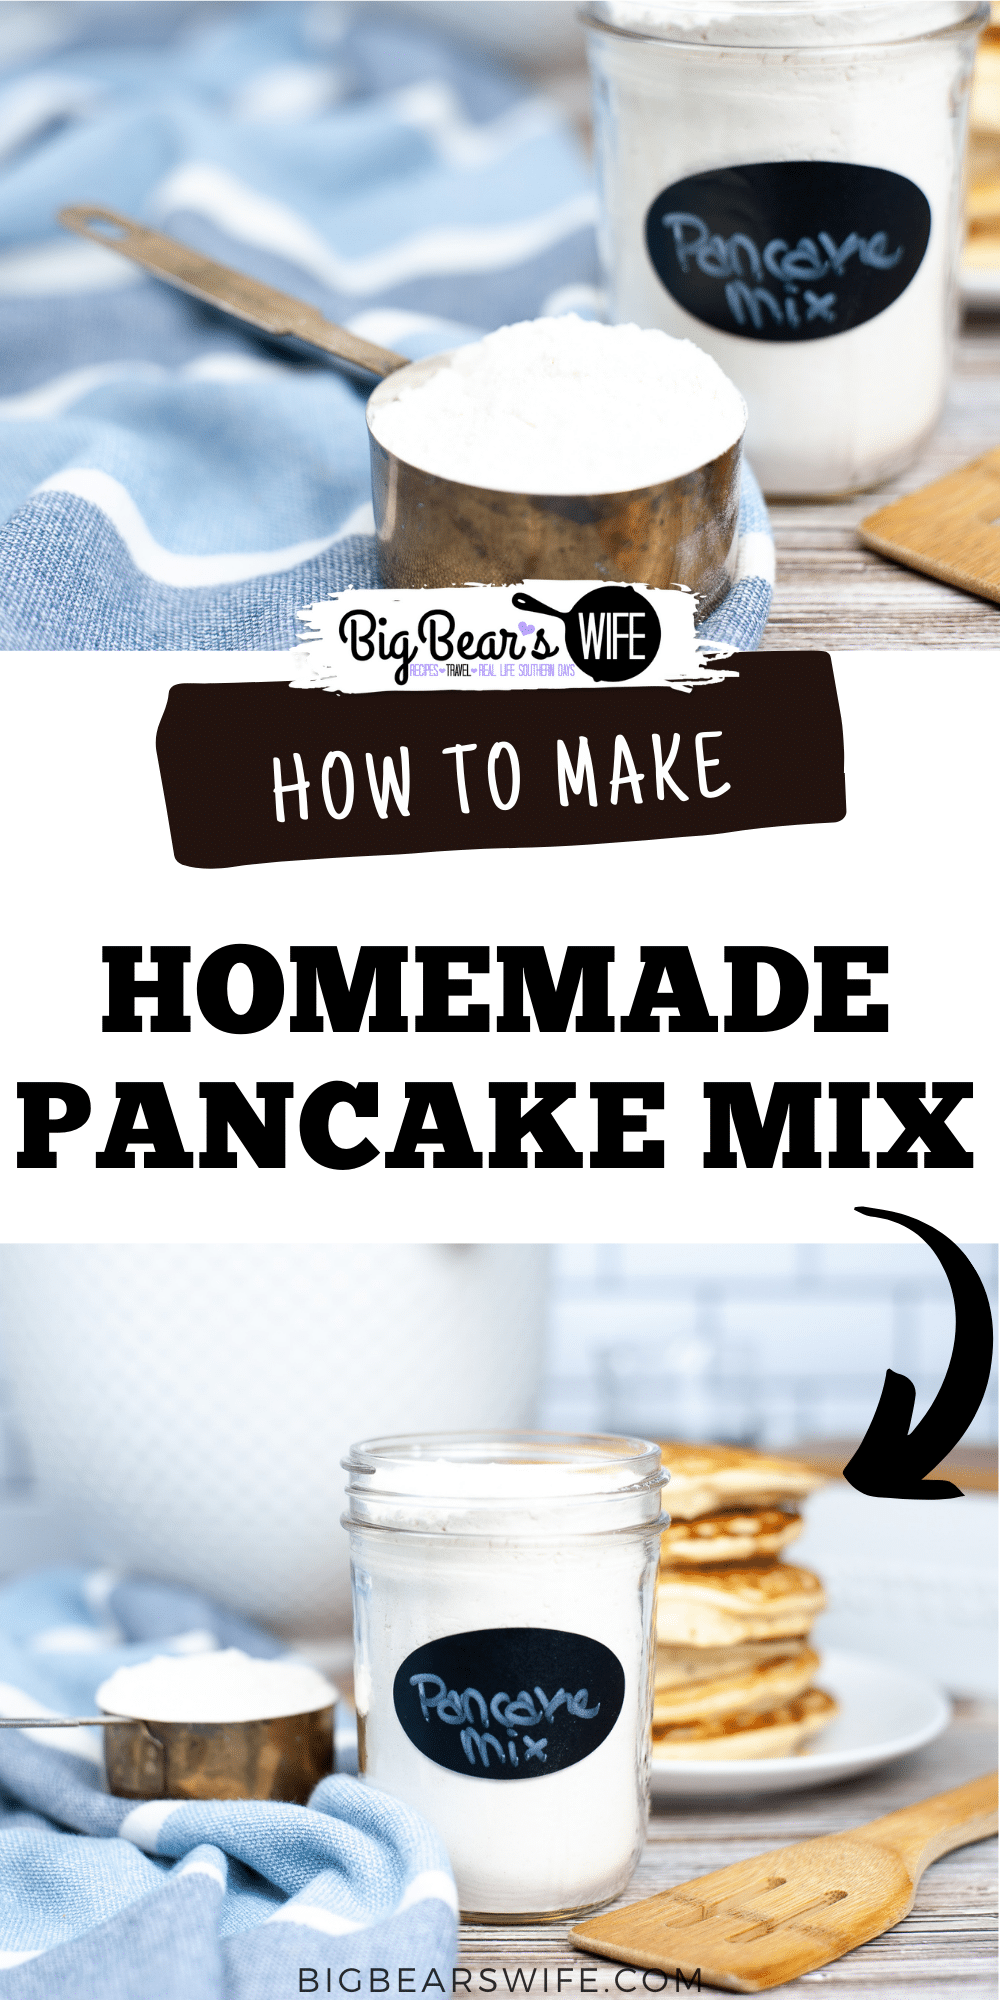 Morning pancakes made with homemade pancake mix is the perfect way to start off the day! This pancake mix is easy to make with simple ingredients and can be stored for about 5-6 months!  via @bigbearswife